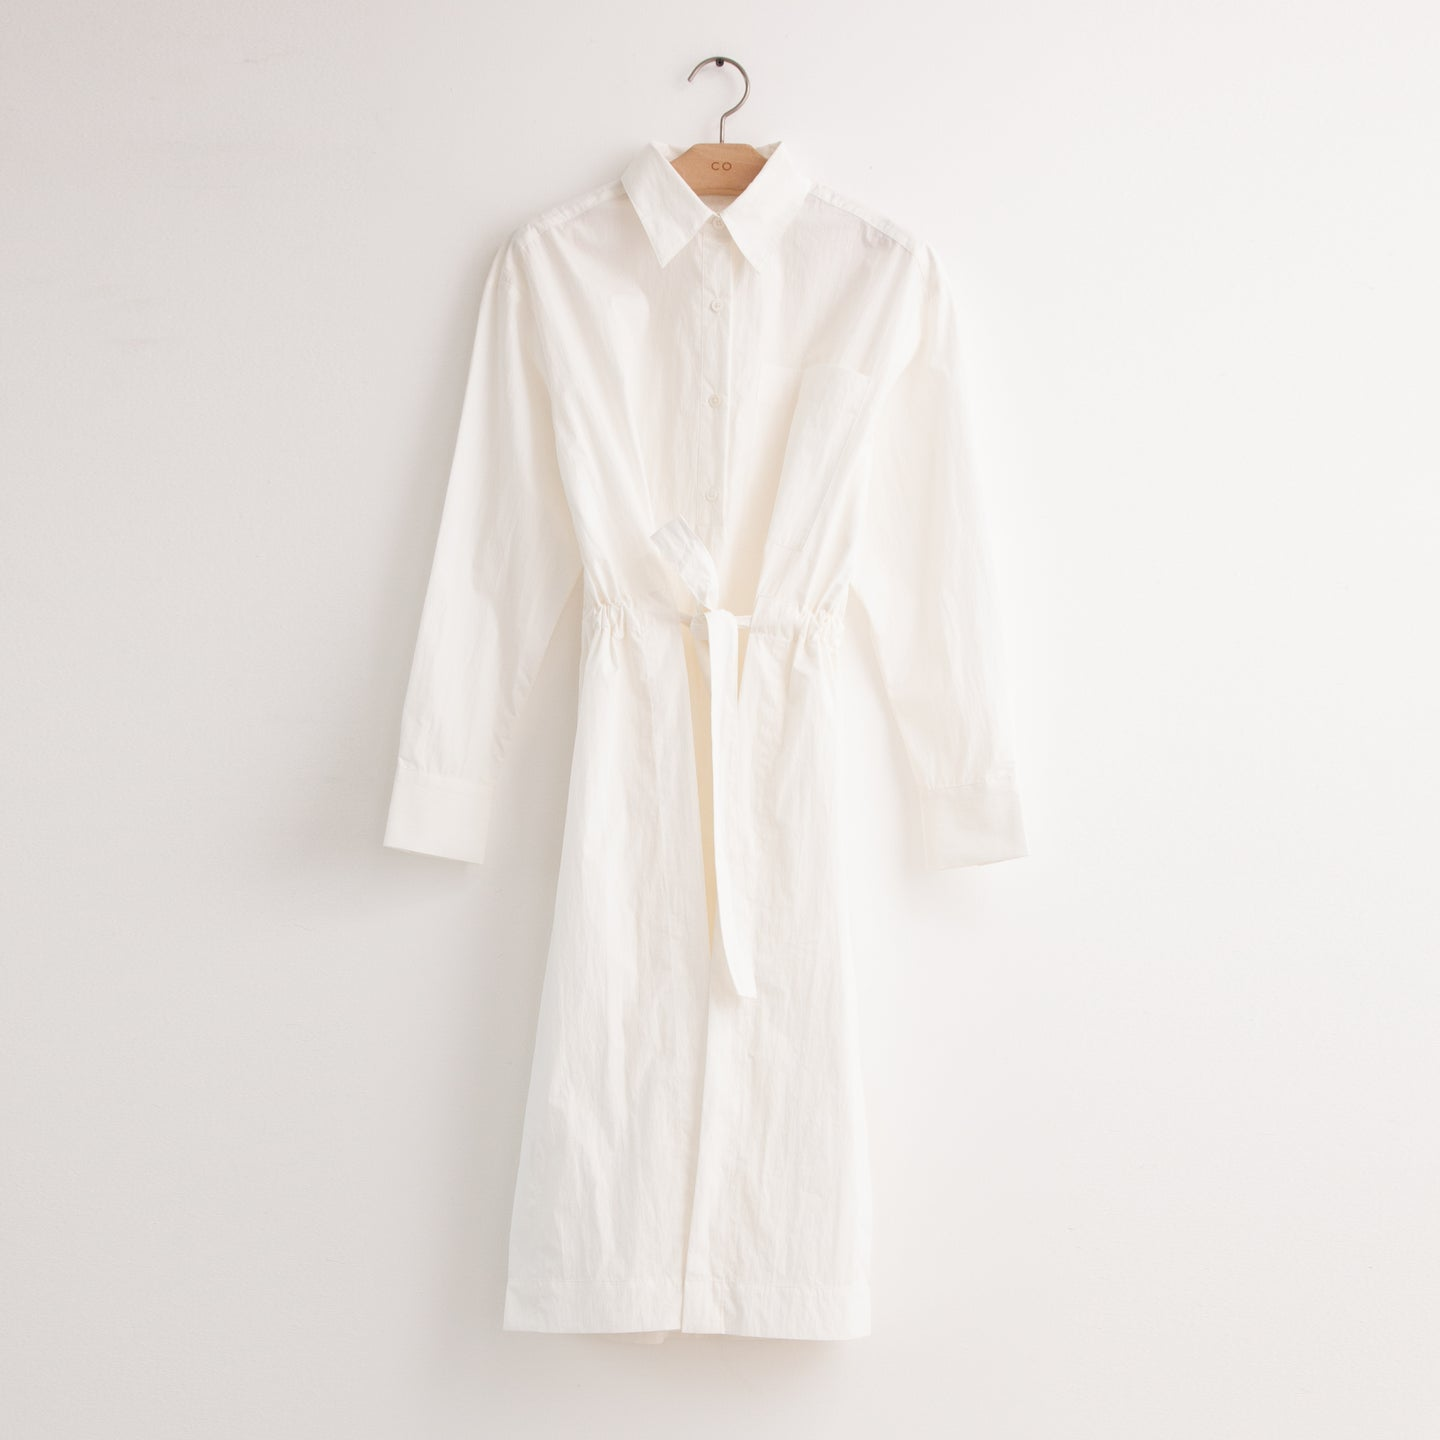 CO - Long sleeve shirt dress with adjustable tunnel belt in white cotton poplin